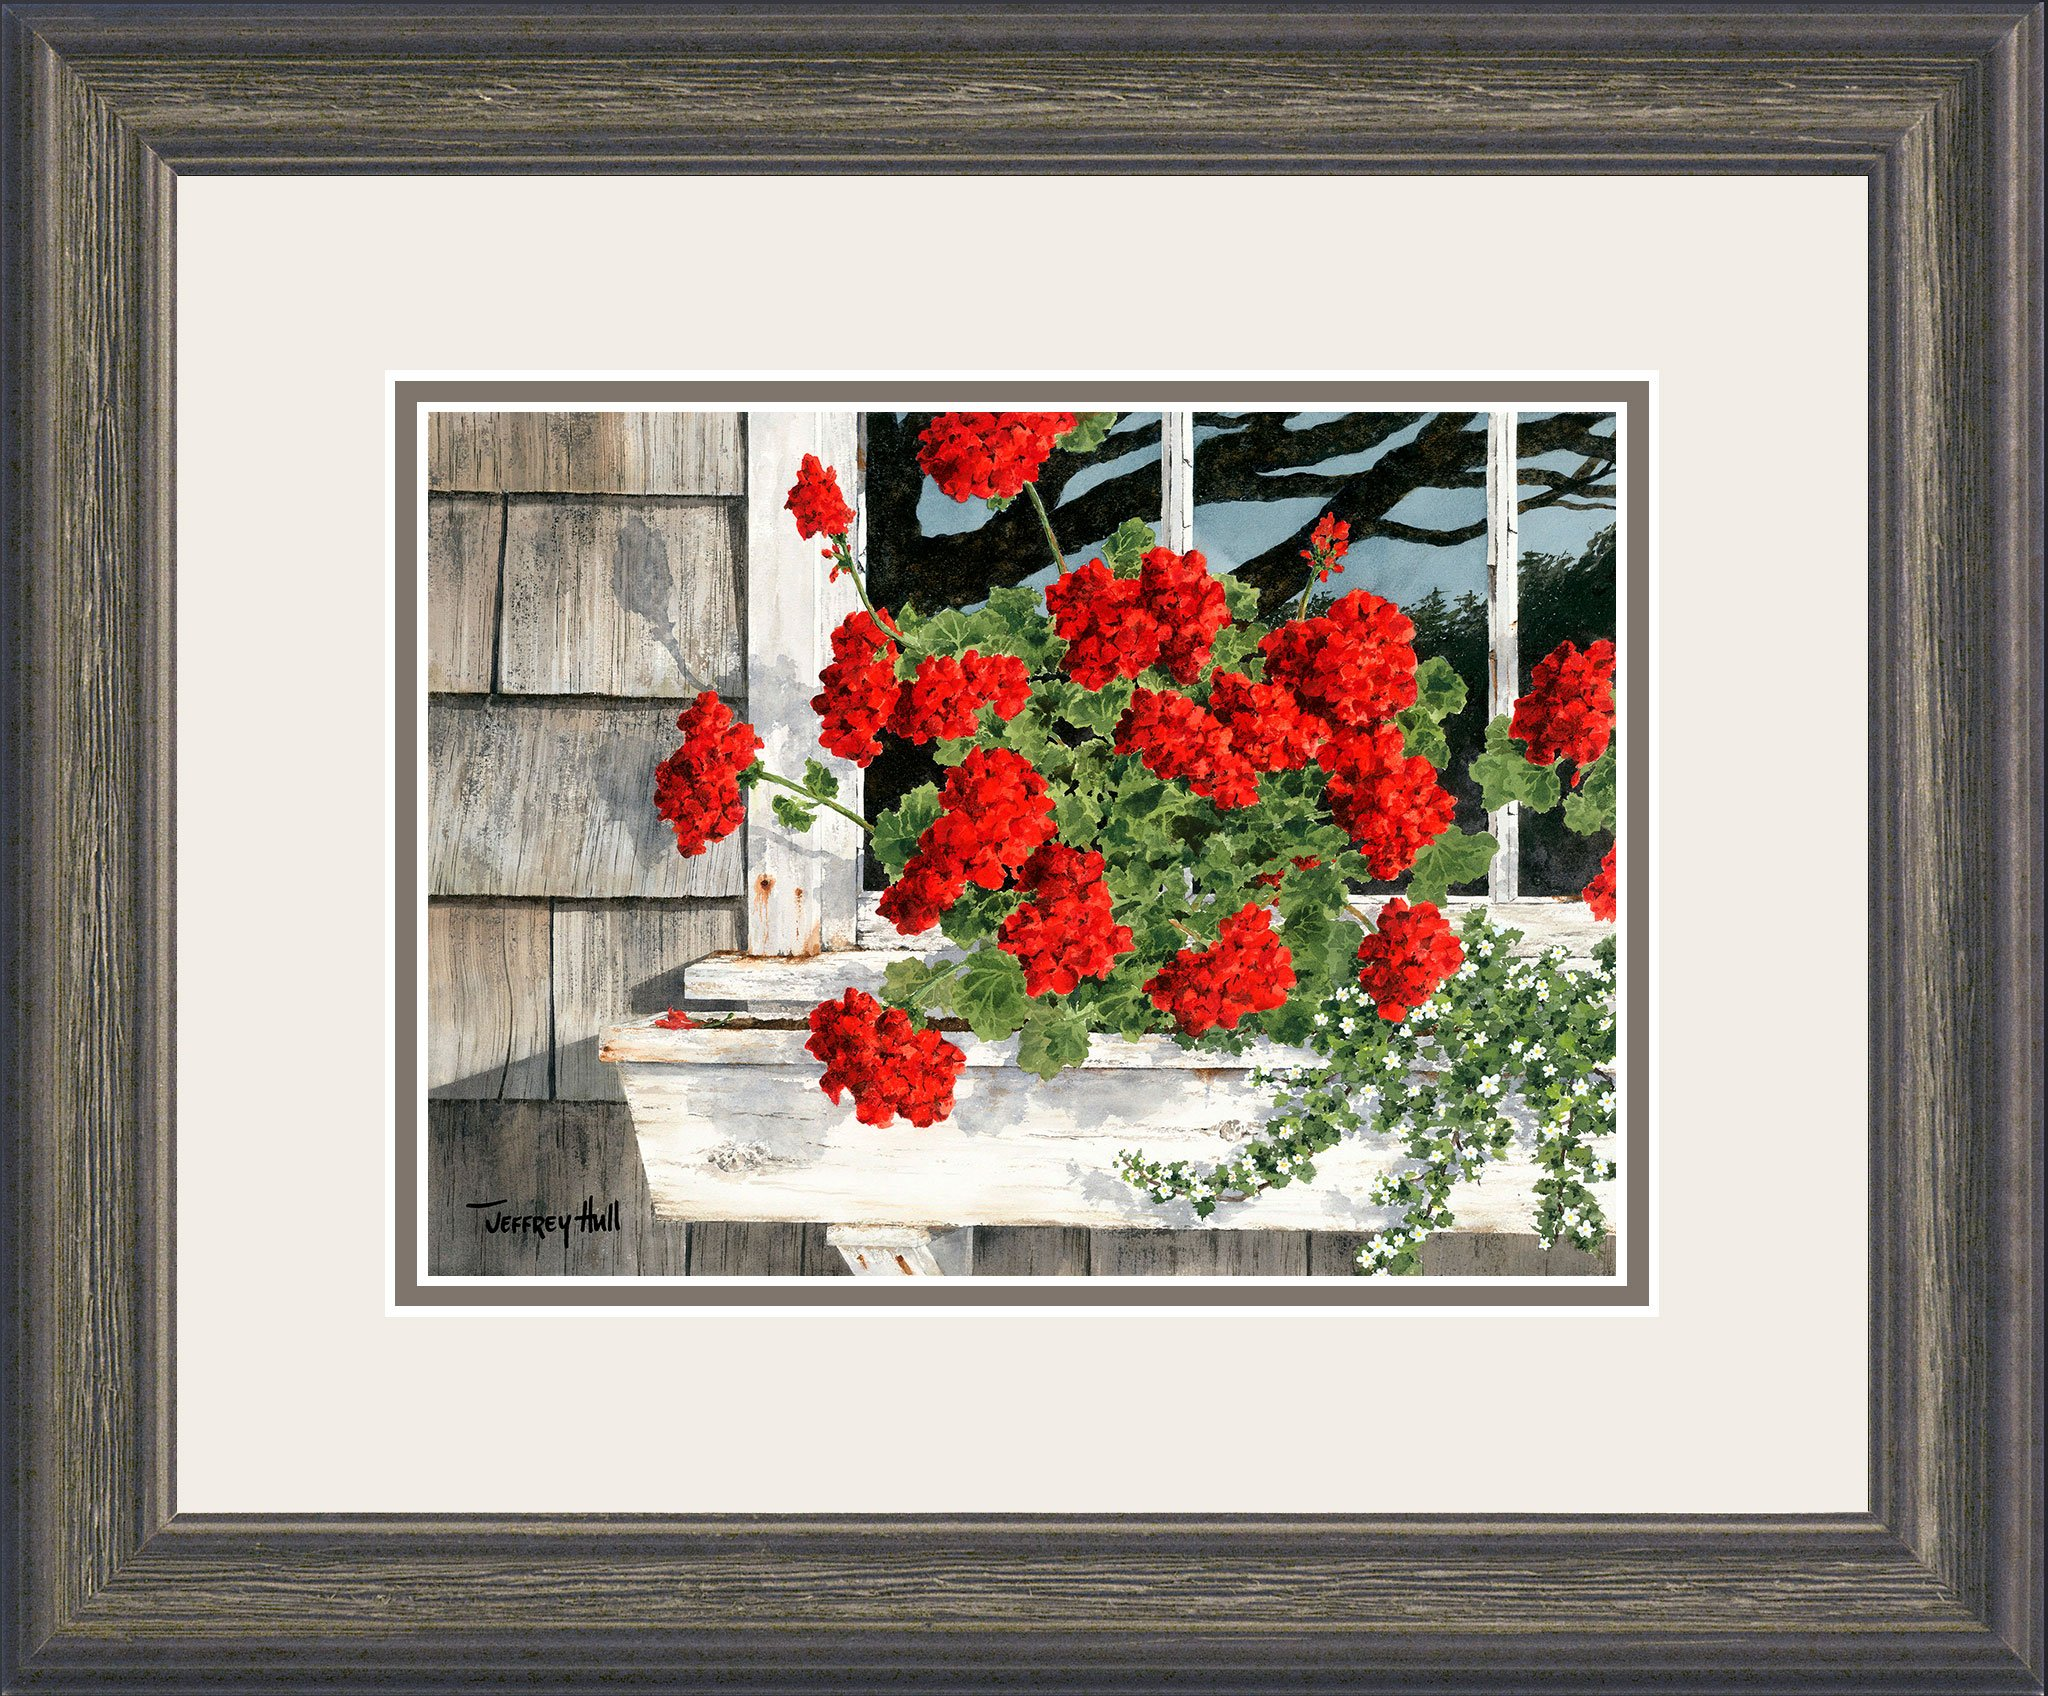 Carol_s-Geraniums-Mini-Cascade-Talc-Balmoral-4-Website-2021